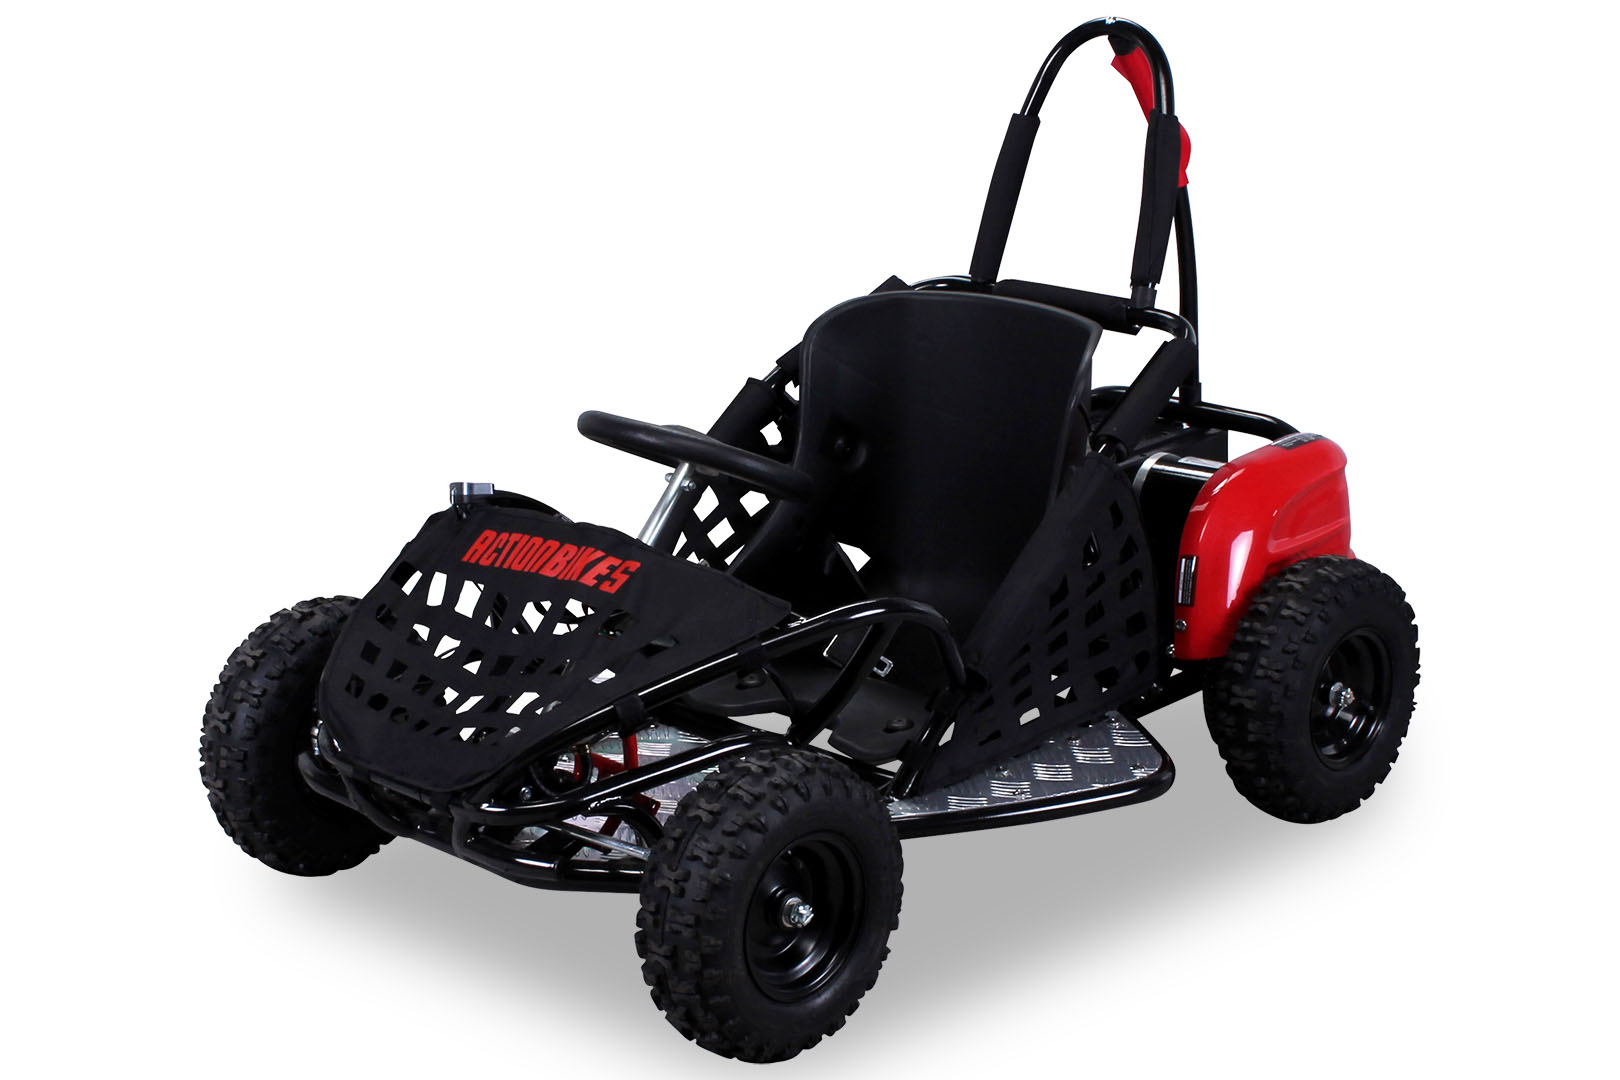 kinder gokart buggy 1000 watt mit netz elektro kinder. Black Bedroom Furniture Sets. Home Design Ideas